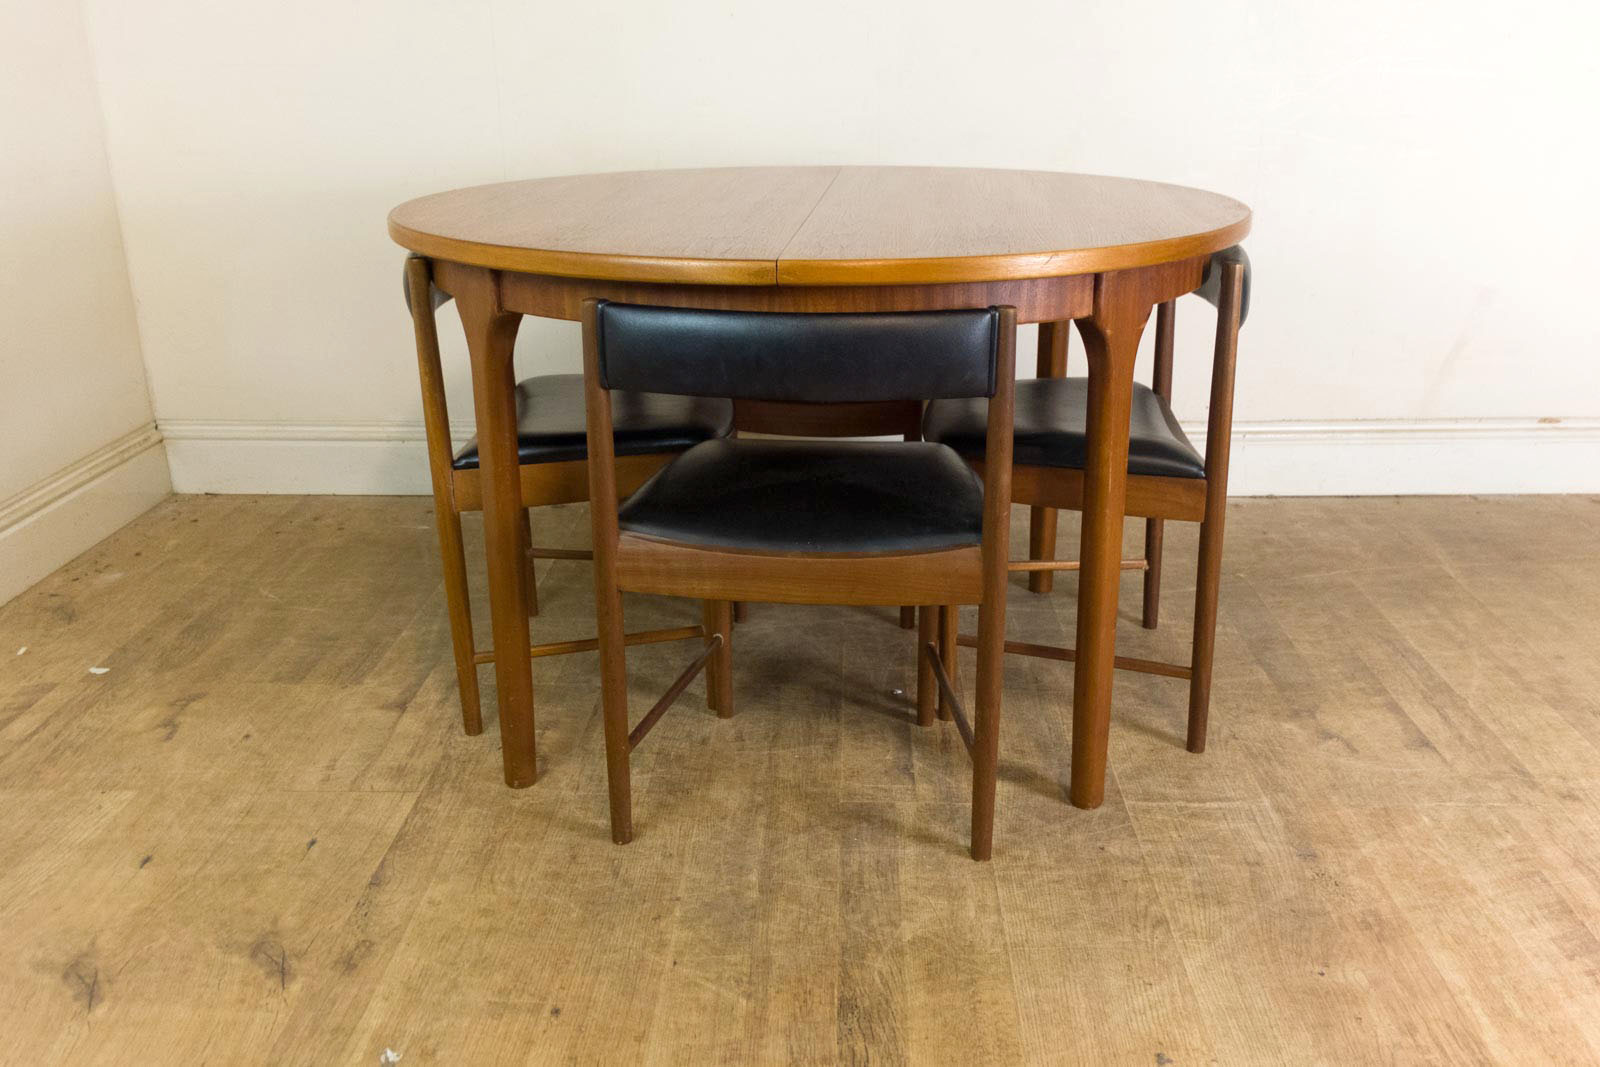 VINTAGE RETRO MID CENTURY TEAK DINING TABLE amp FOUR 4 TUCK  : HV290803 1 from www.ebay.co.uk size 1600 x 1067 jpeg 210kB